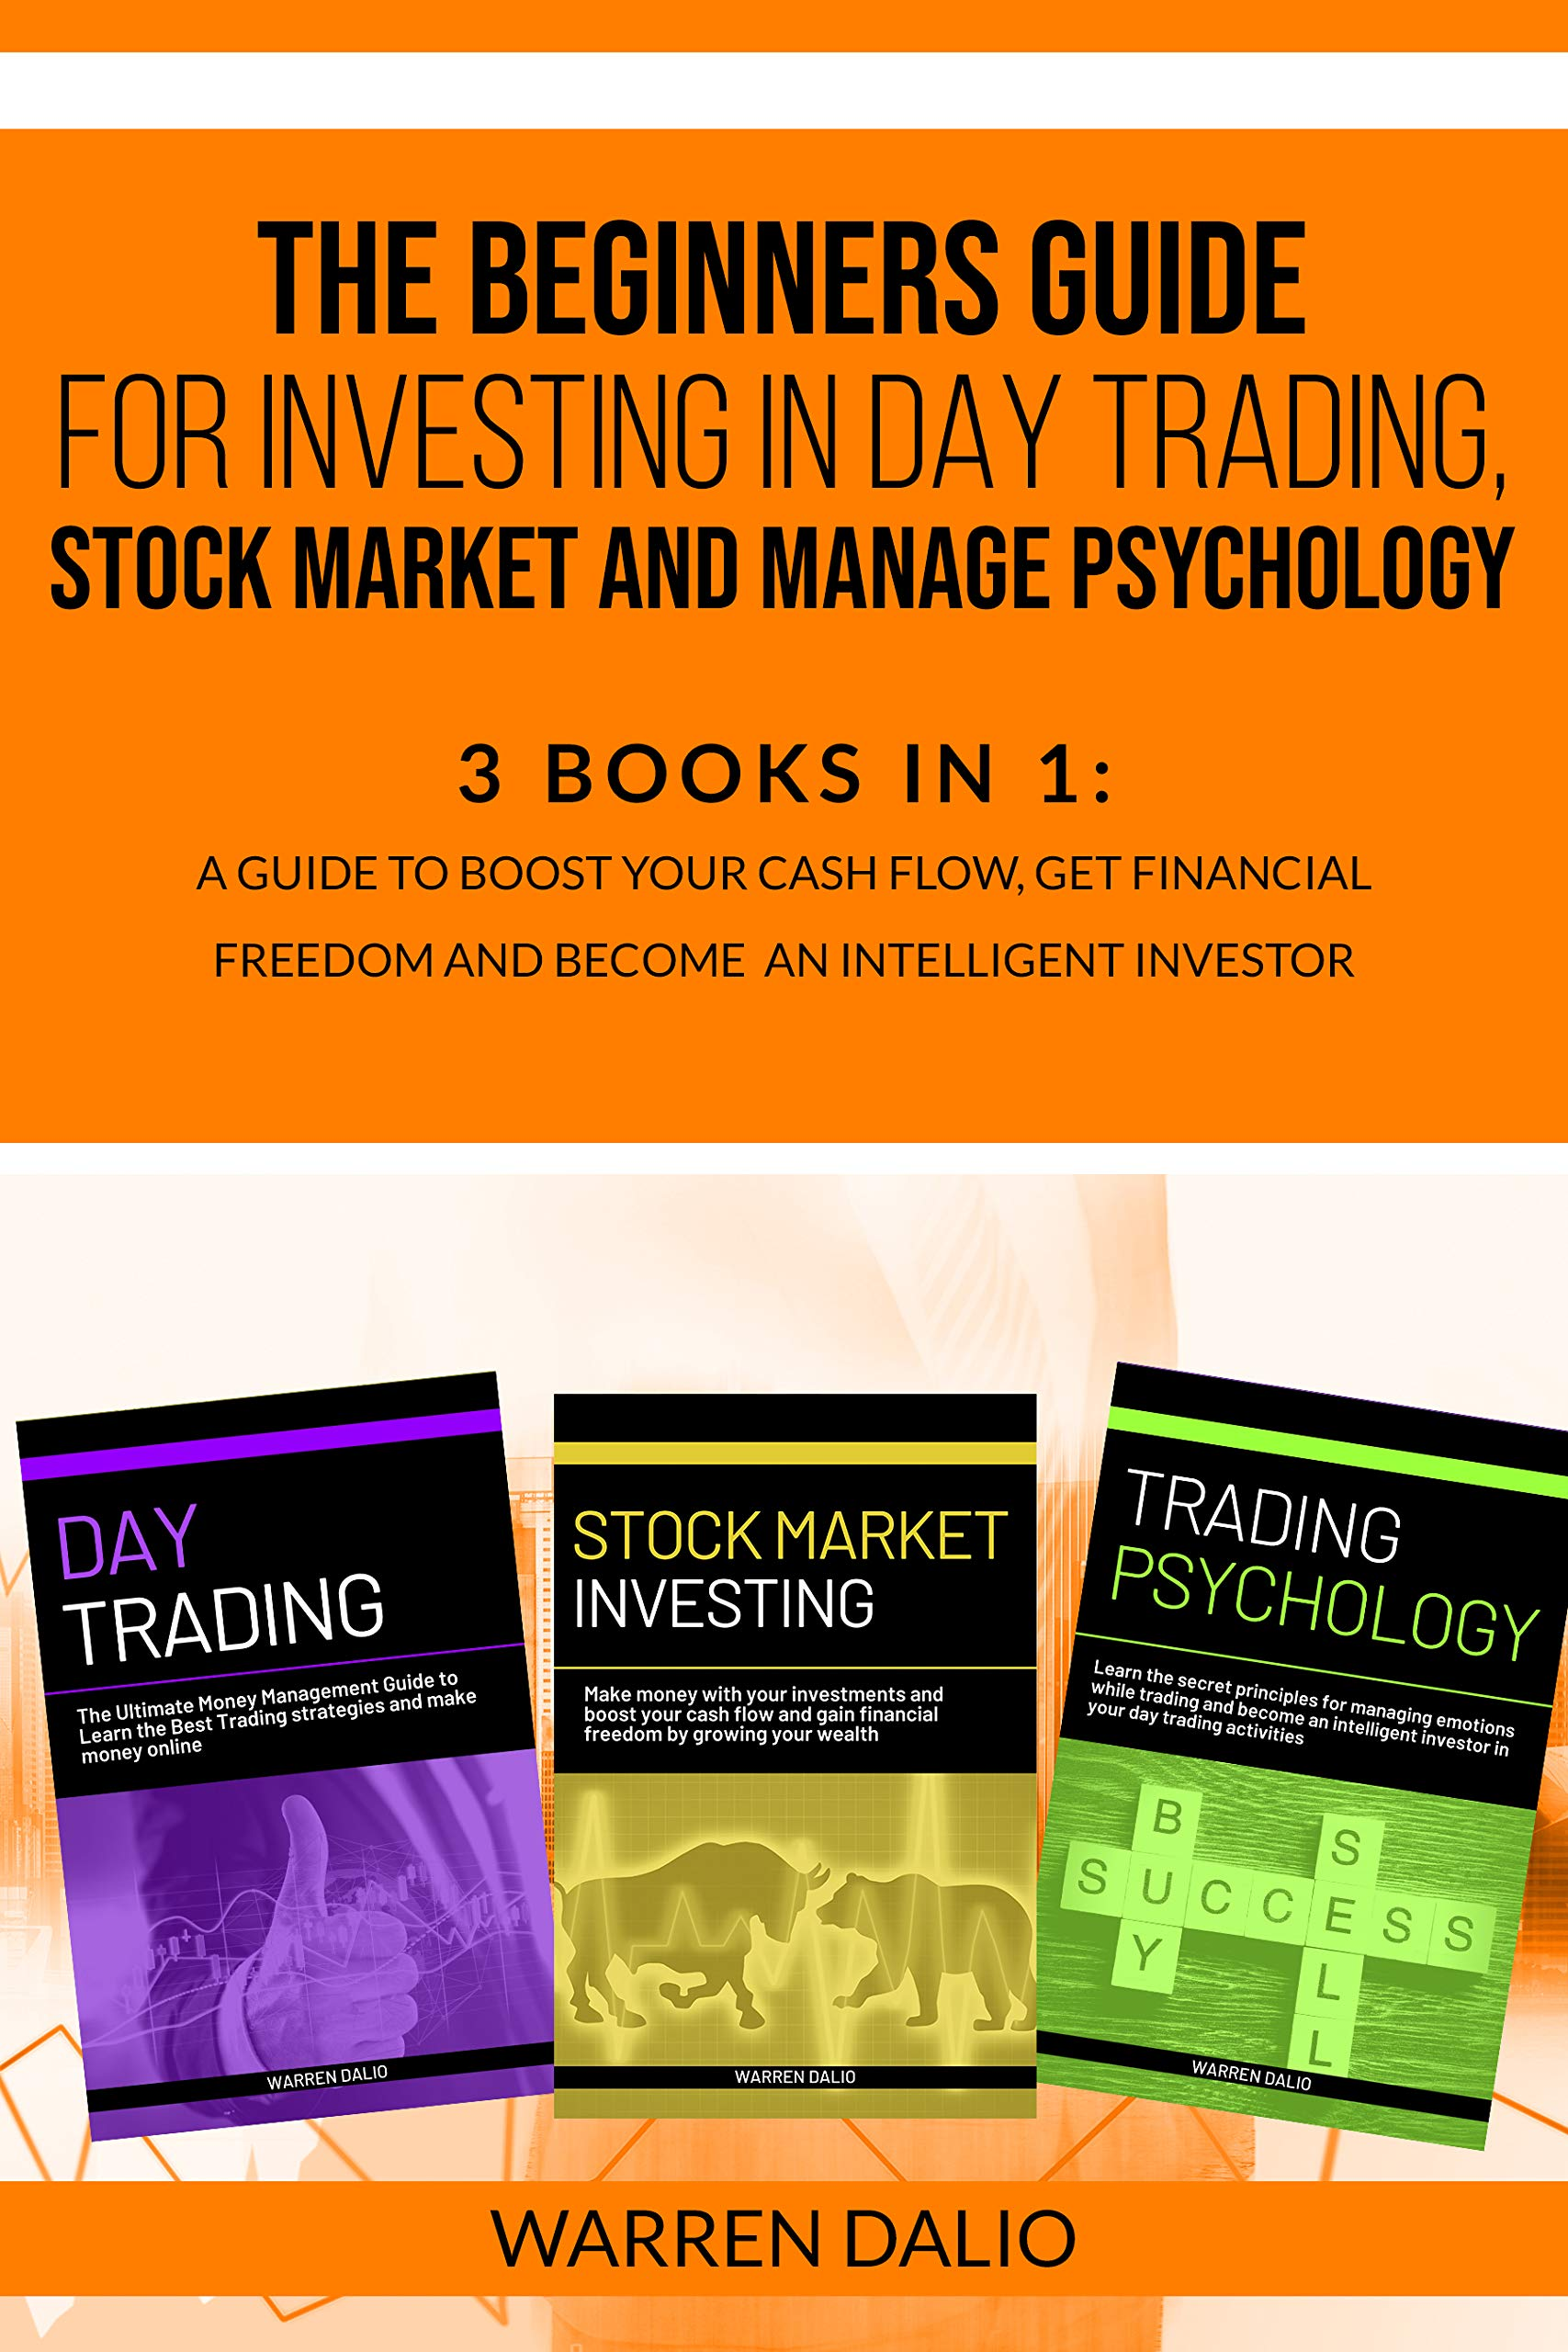 THE BEGINNERS GUIDE FOR INVESTING IN DAY TRADING, STOCK MARKET AND MANAGE PSYCHOLOGY:: 3 Books In 1: To Boost Your Cash Flow, Get Financial Freedom And Become An Intelligent Investor